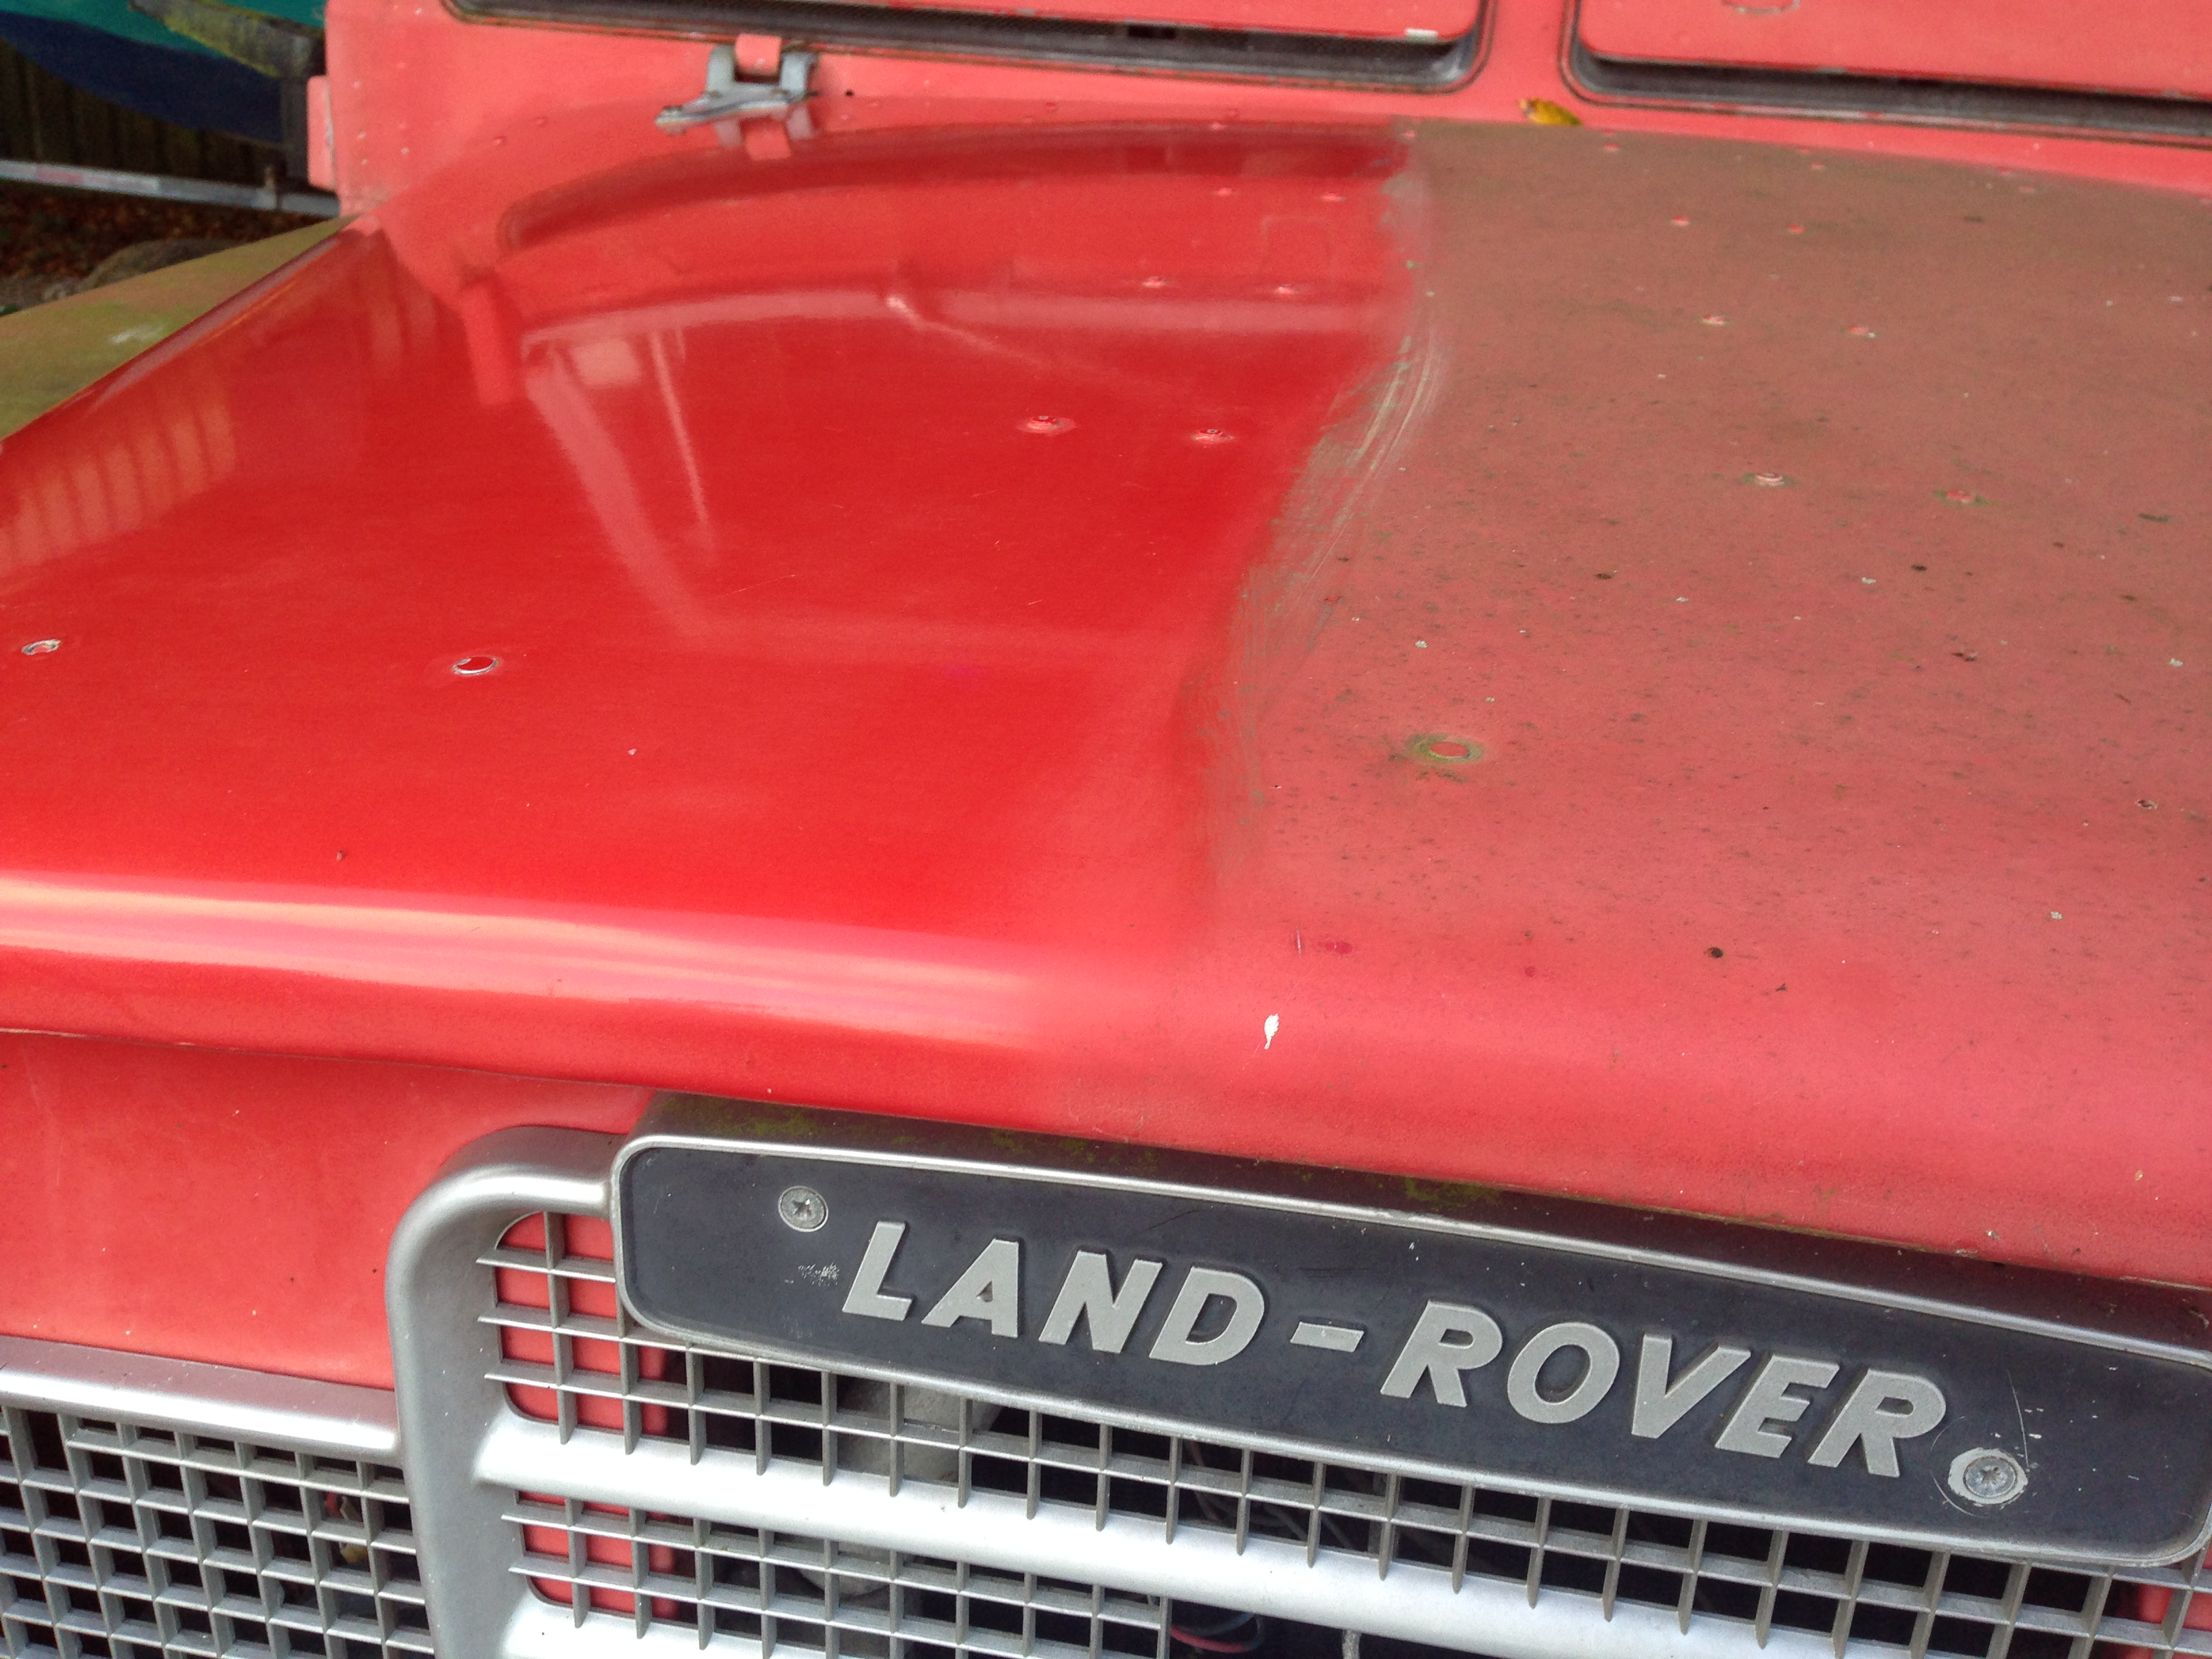 Incredible results on an old Land Rover fire truck